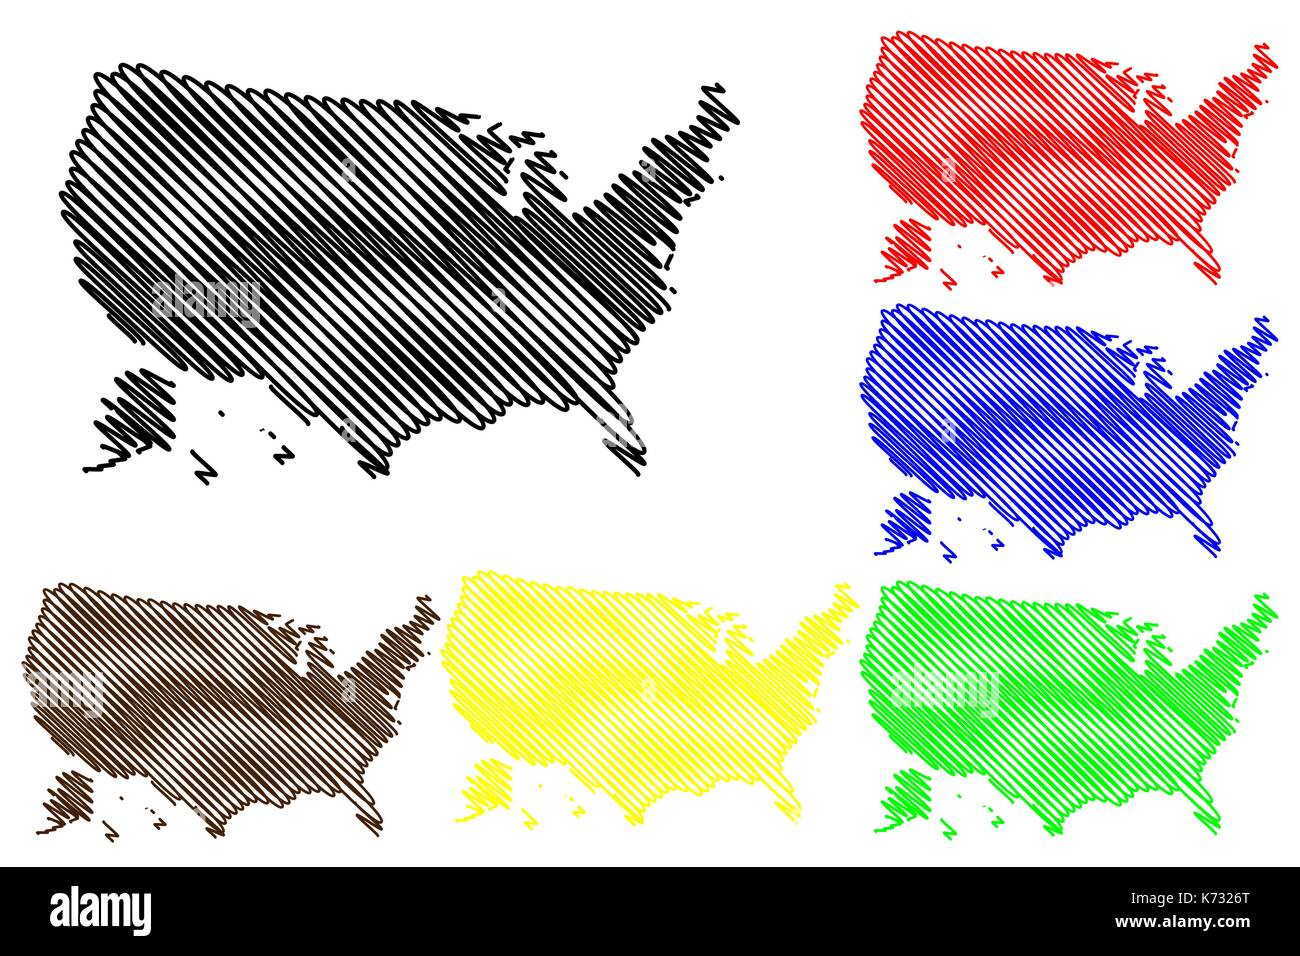 united states of america map vector illustration scribble sketch usa stock image